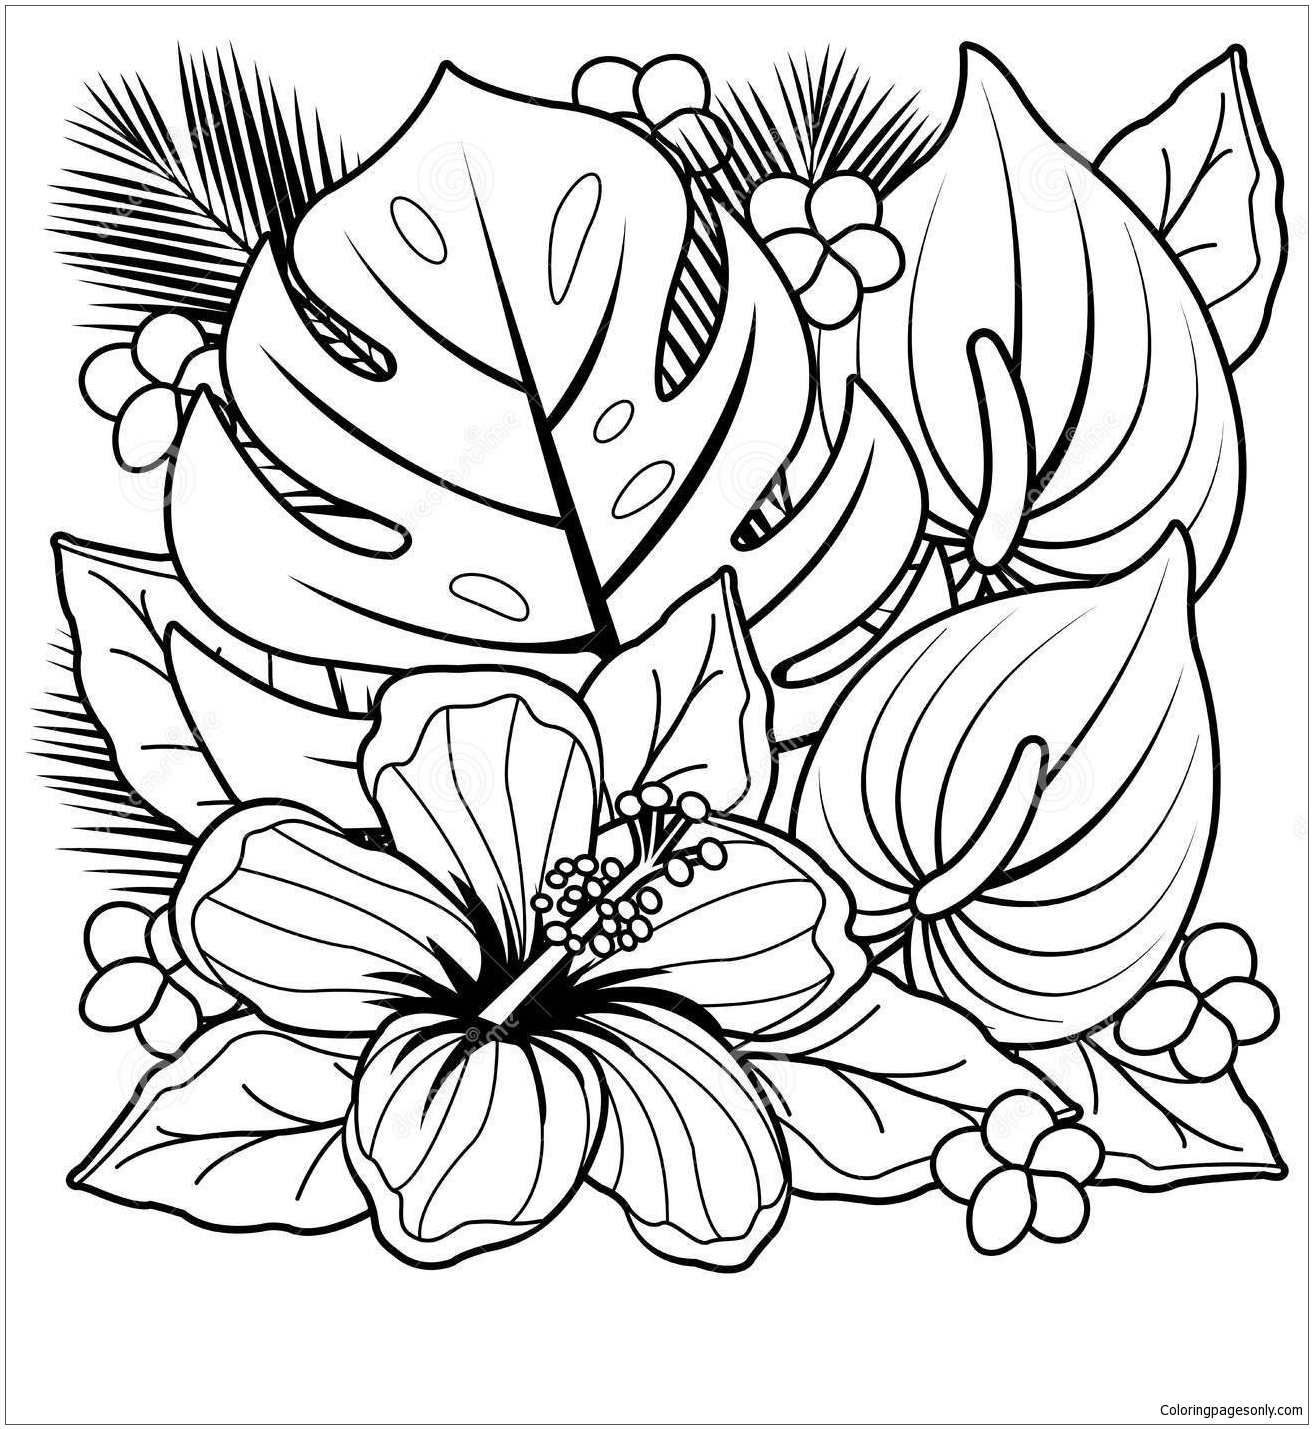 - Tropical Plants And Hibiscus Flowers Coloring Page - Free Coloring